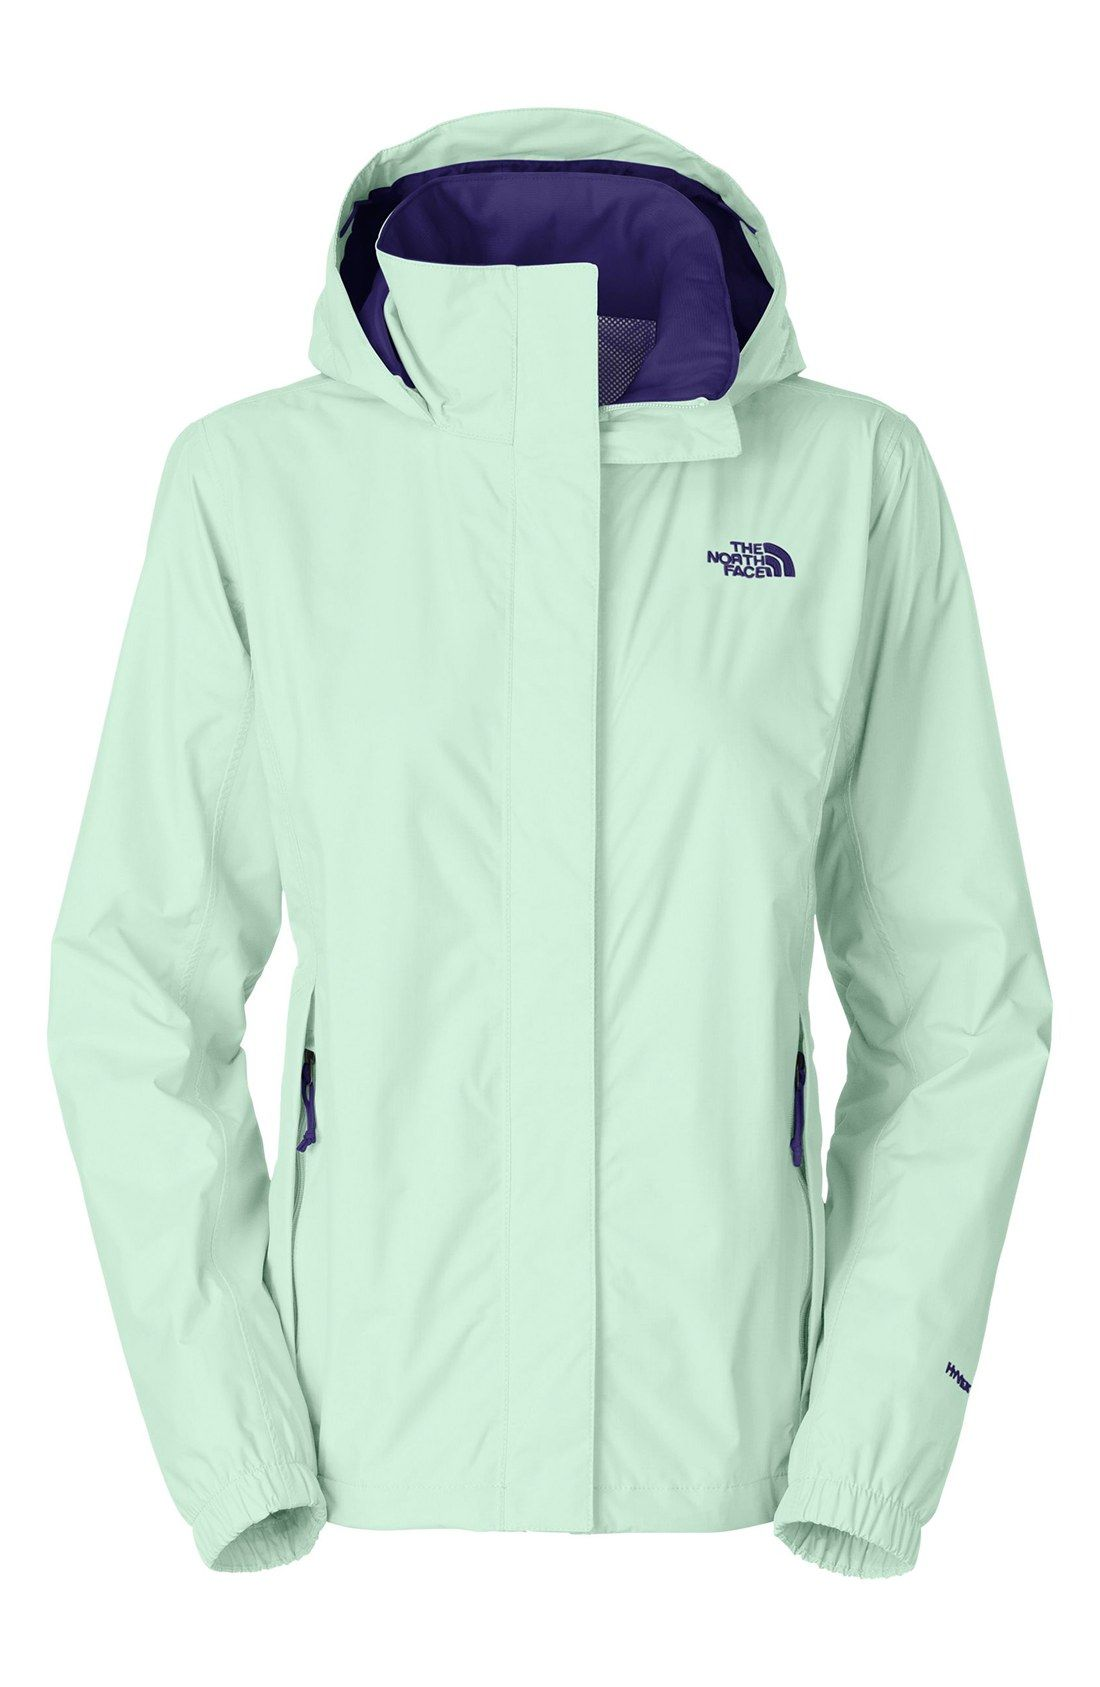 The North Face 'Resolve' Waterproof Jacket | Nordstrom